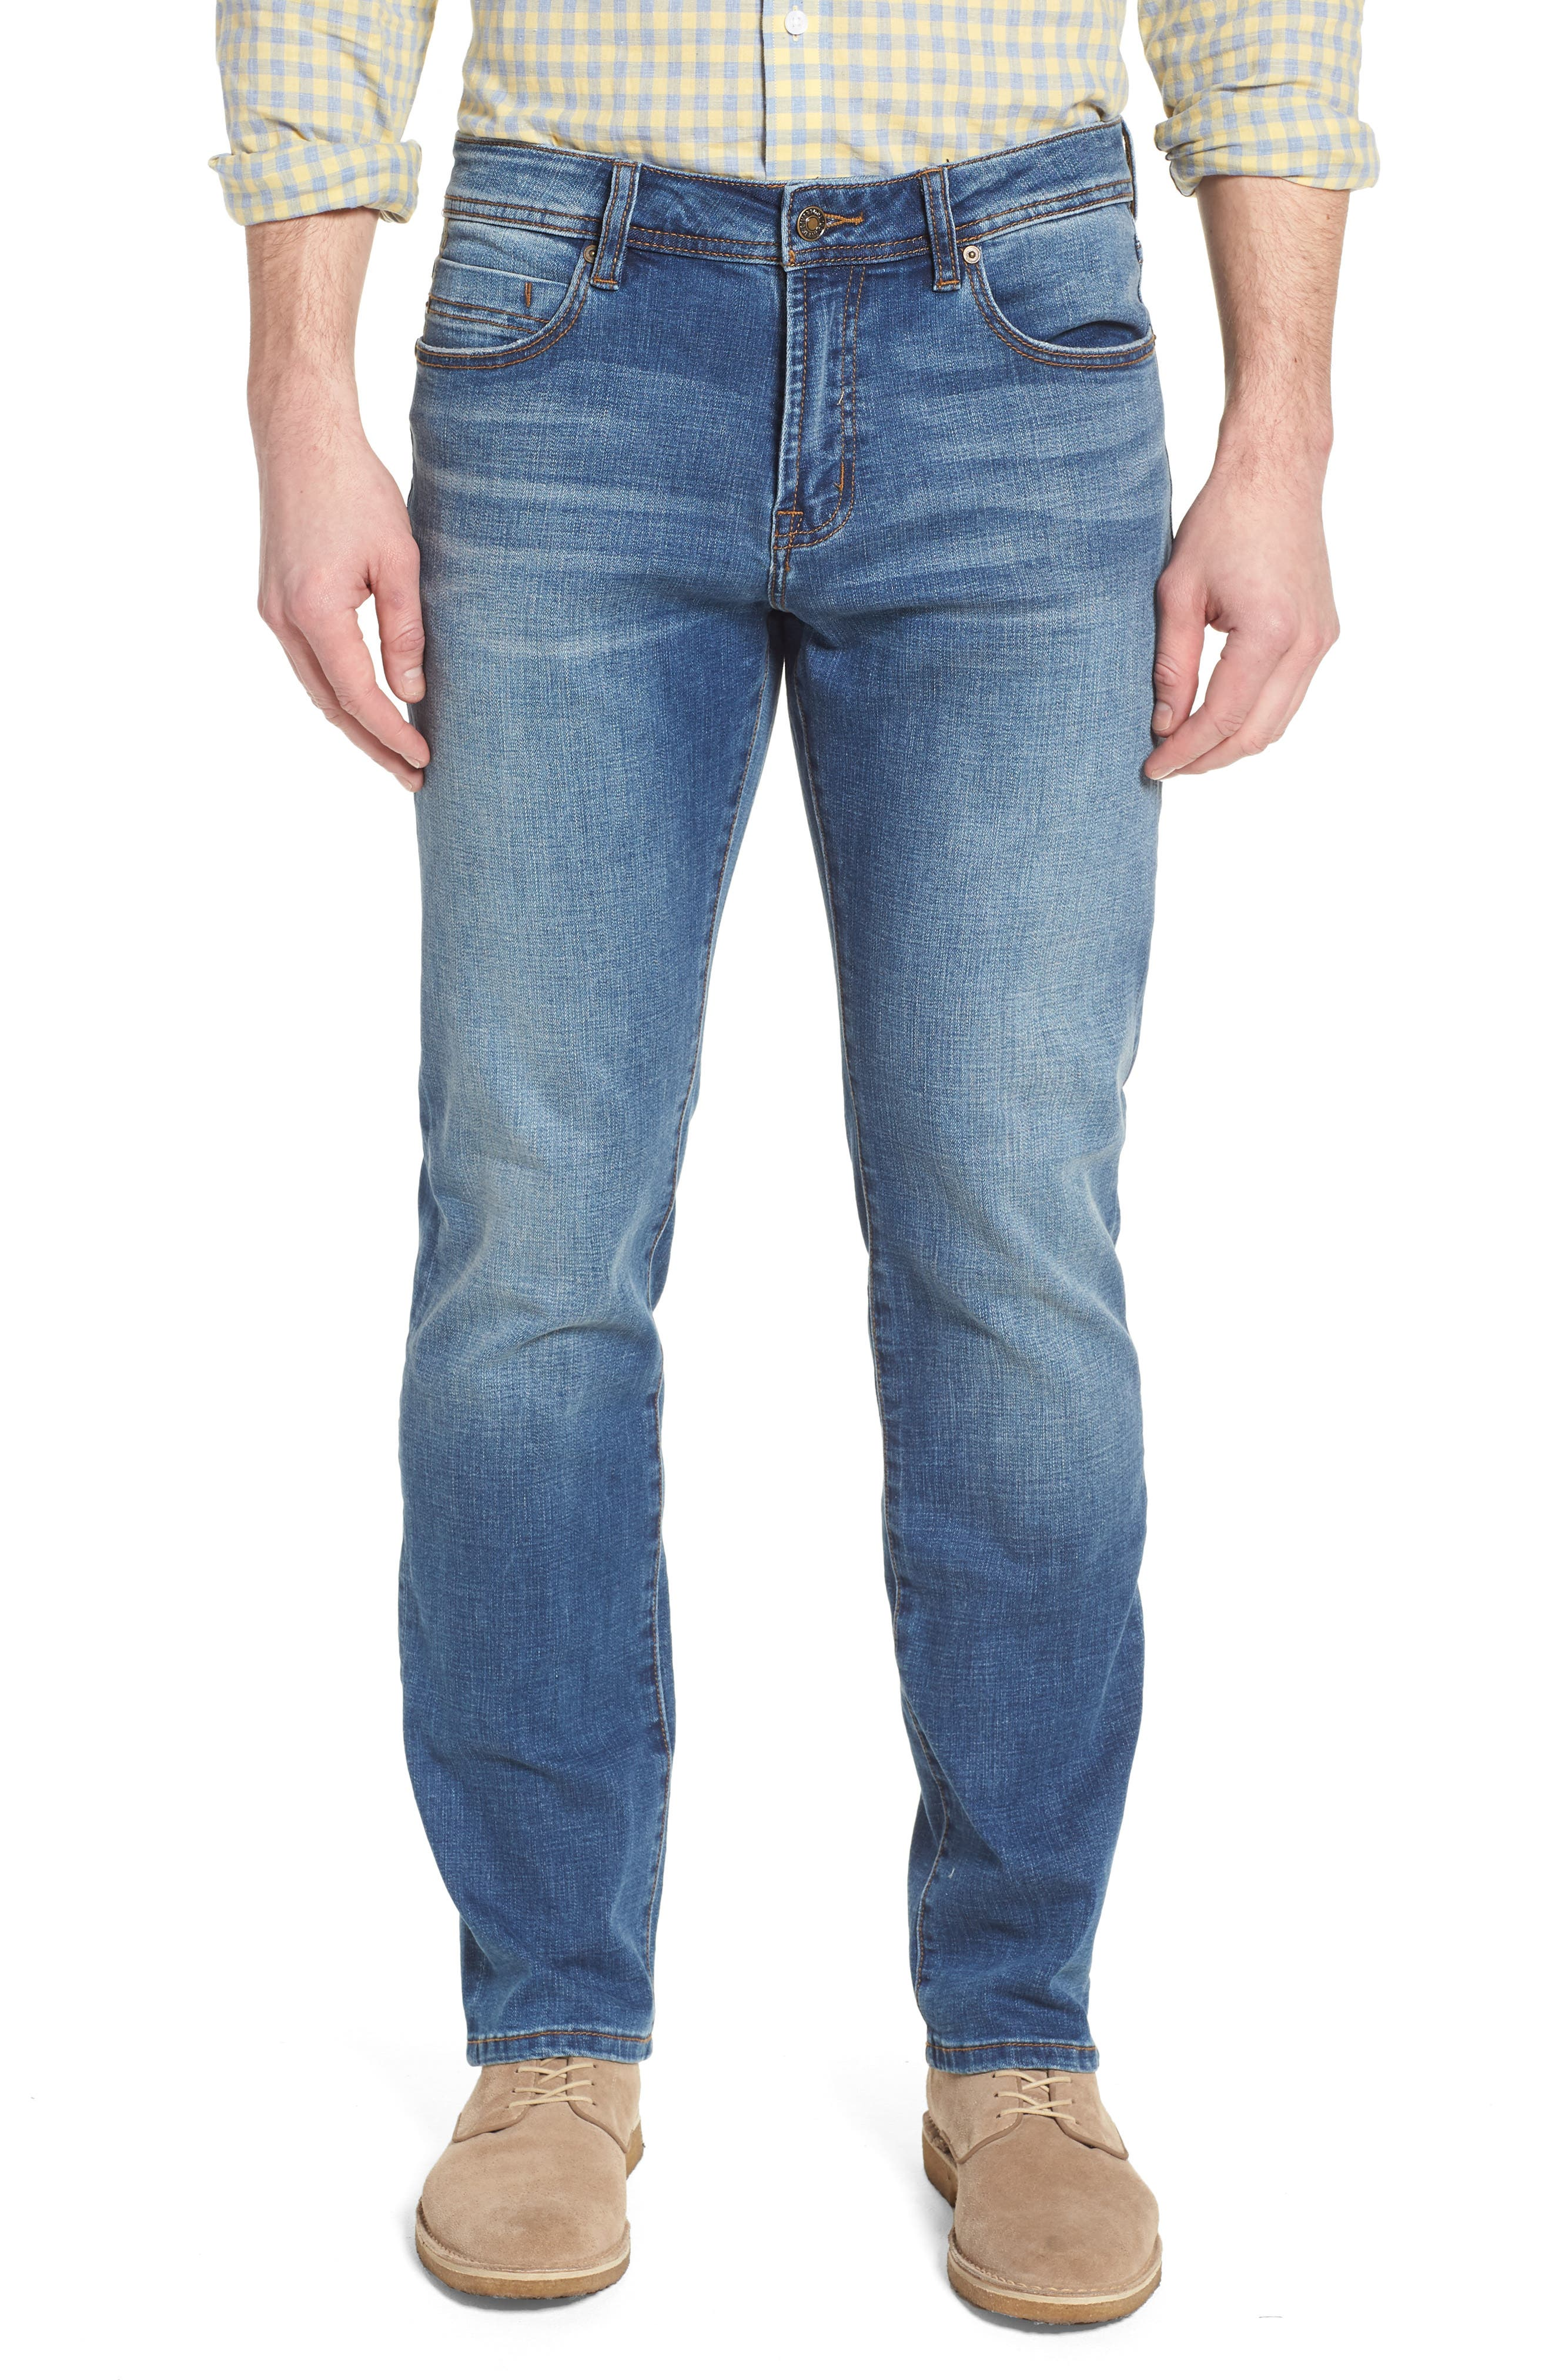 Jeans Co. Regent Relaxed Straight Leg Jeans,                         Main,                         color,